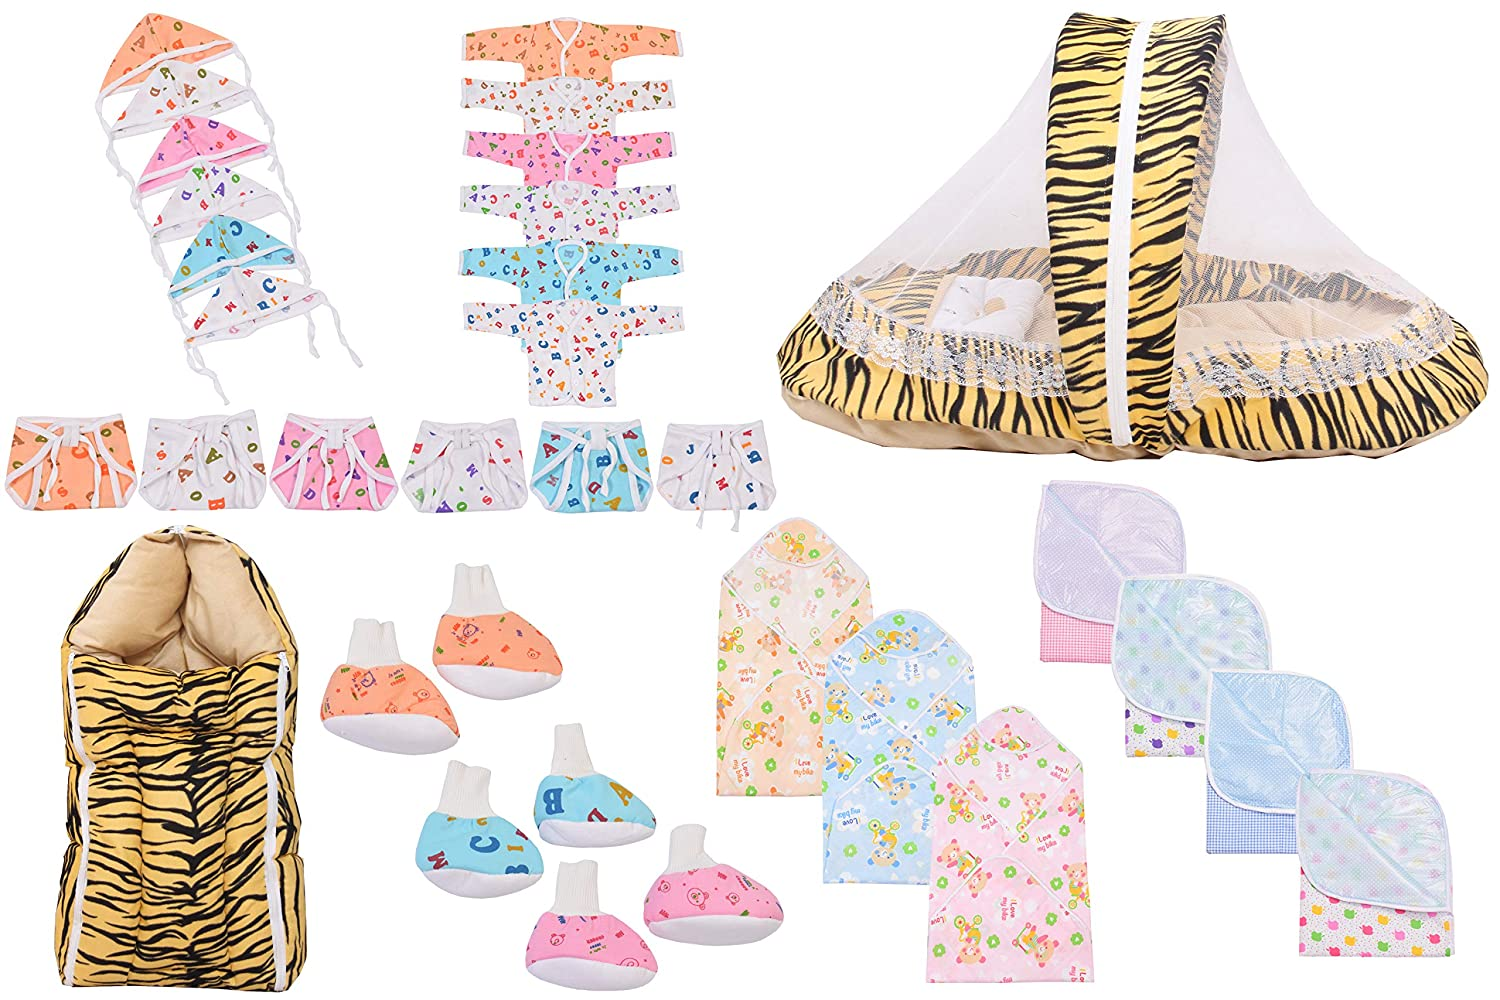 Baby Fly Baby Combo Gift Pack of 6 Jhabla, 6 Nappy, 6 Cap, 1